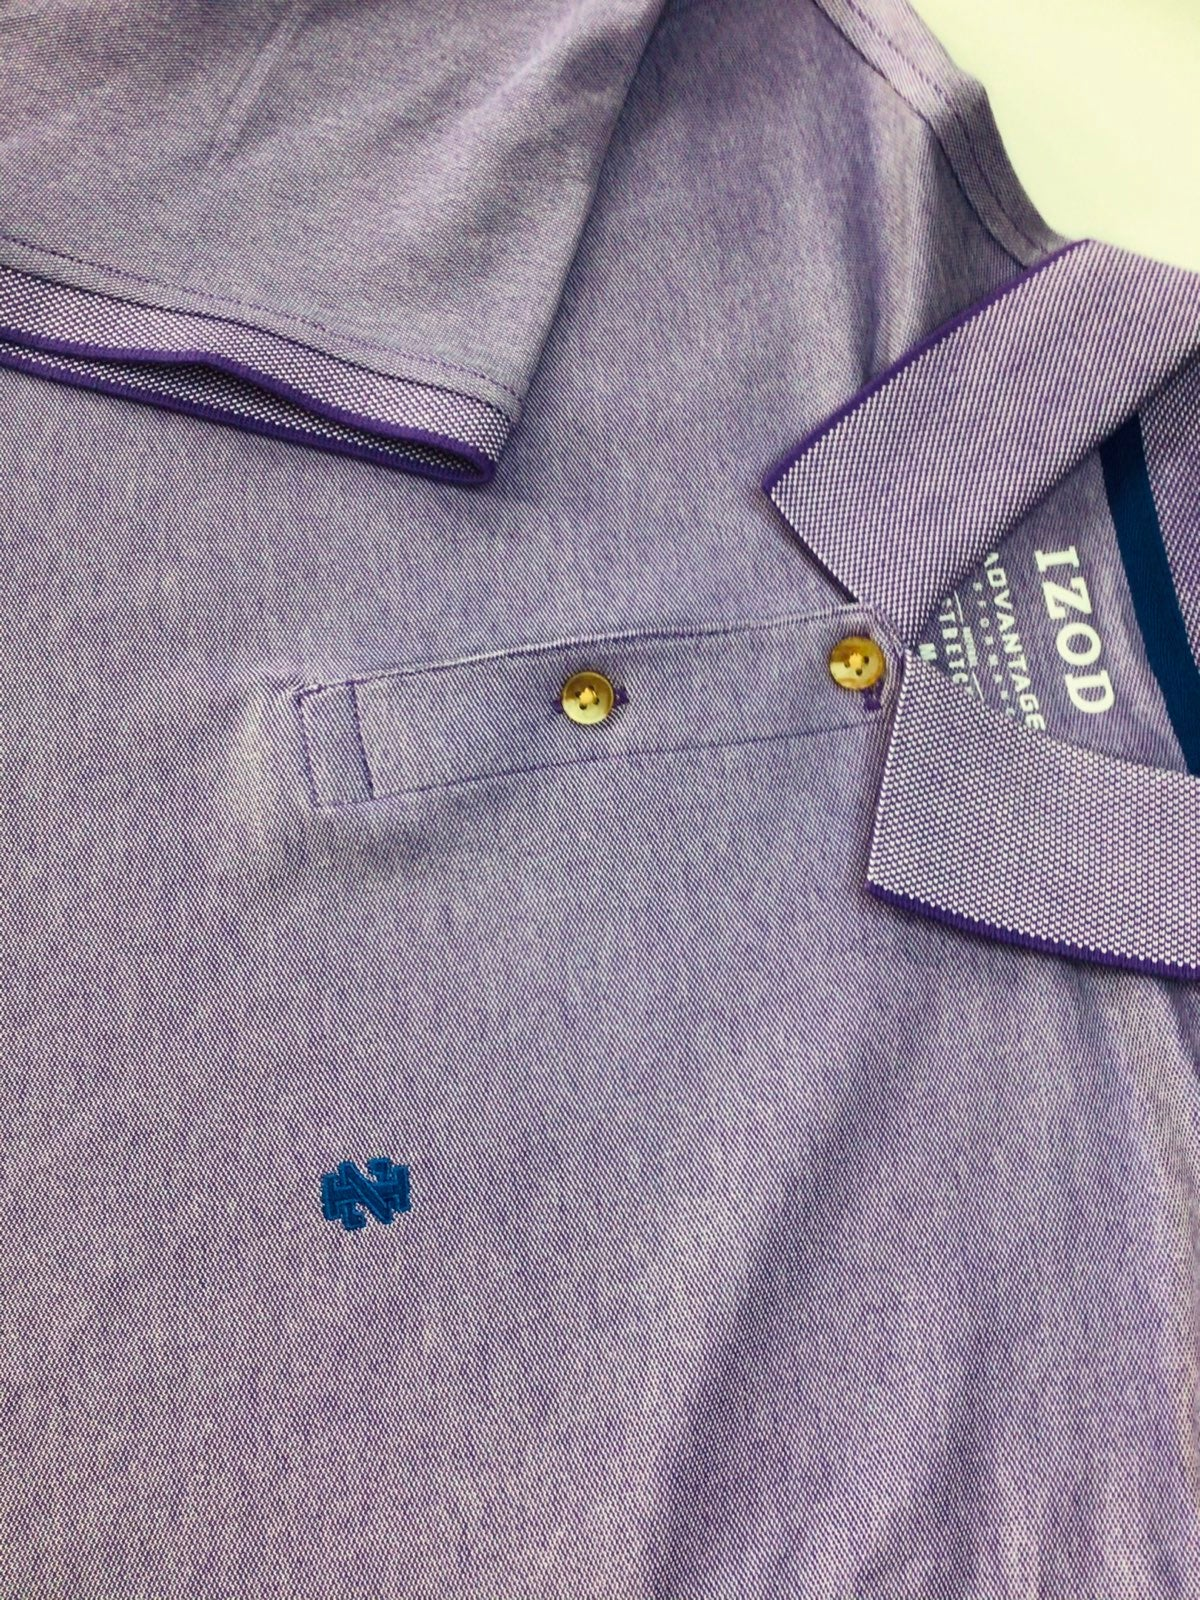 NEW Mens IZOD Polo Purple Medium